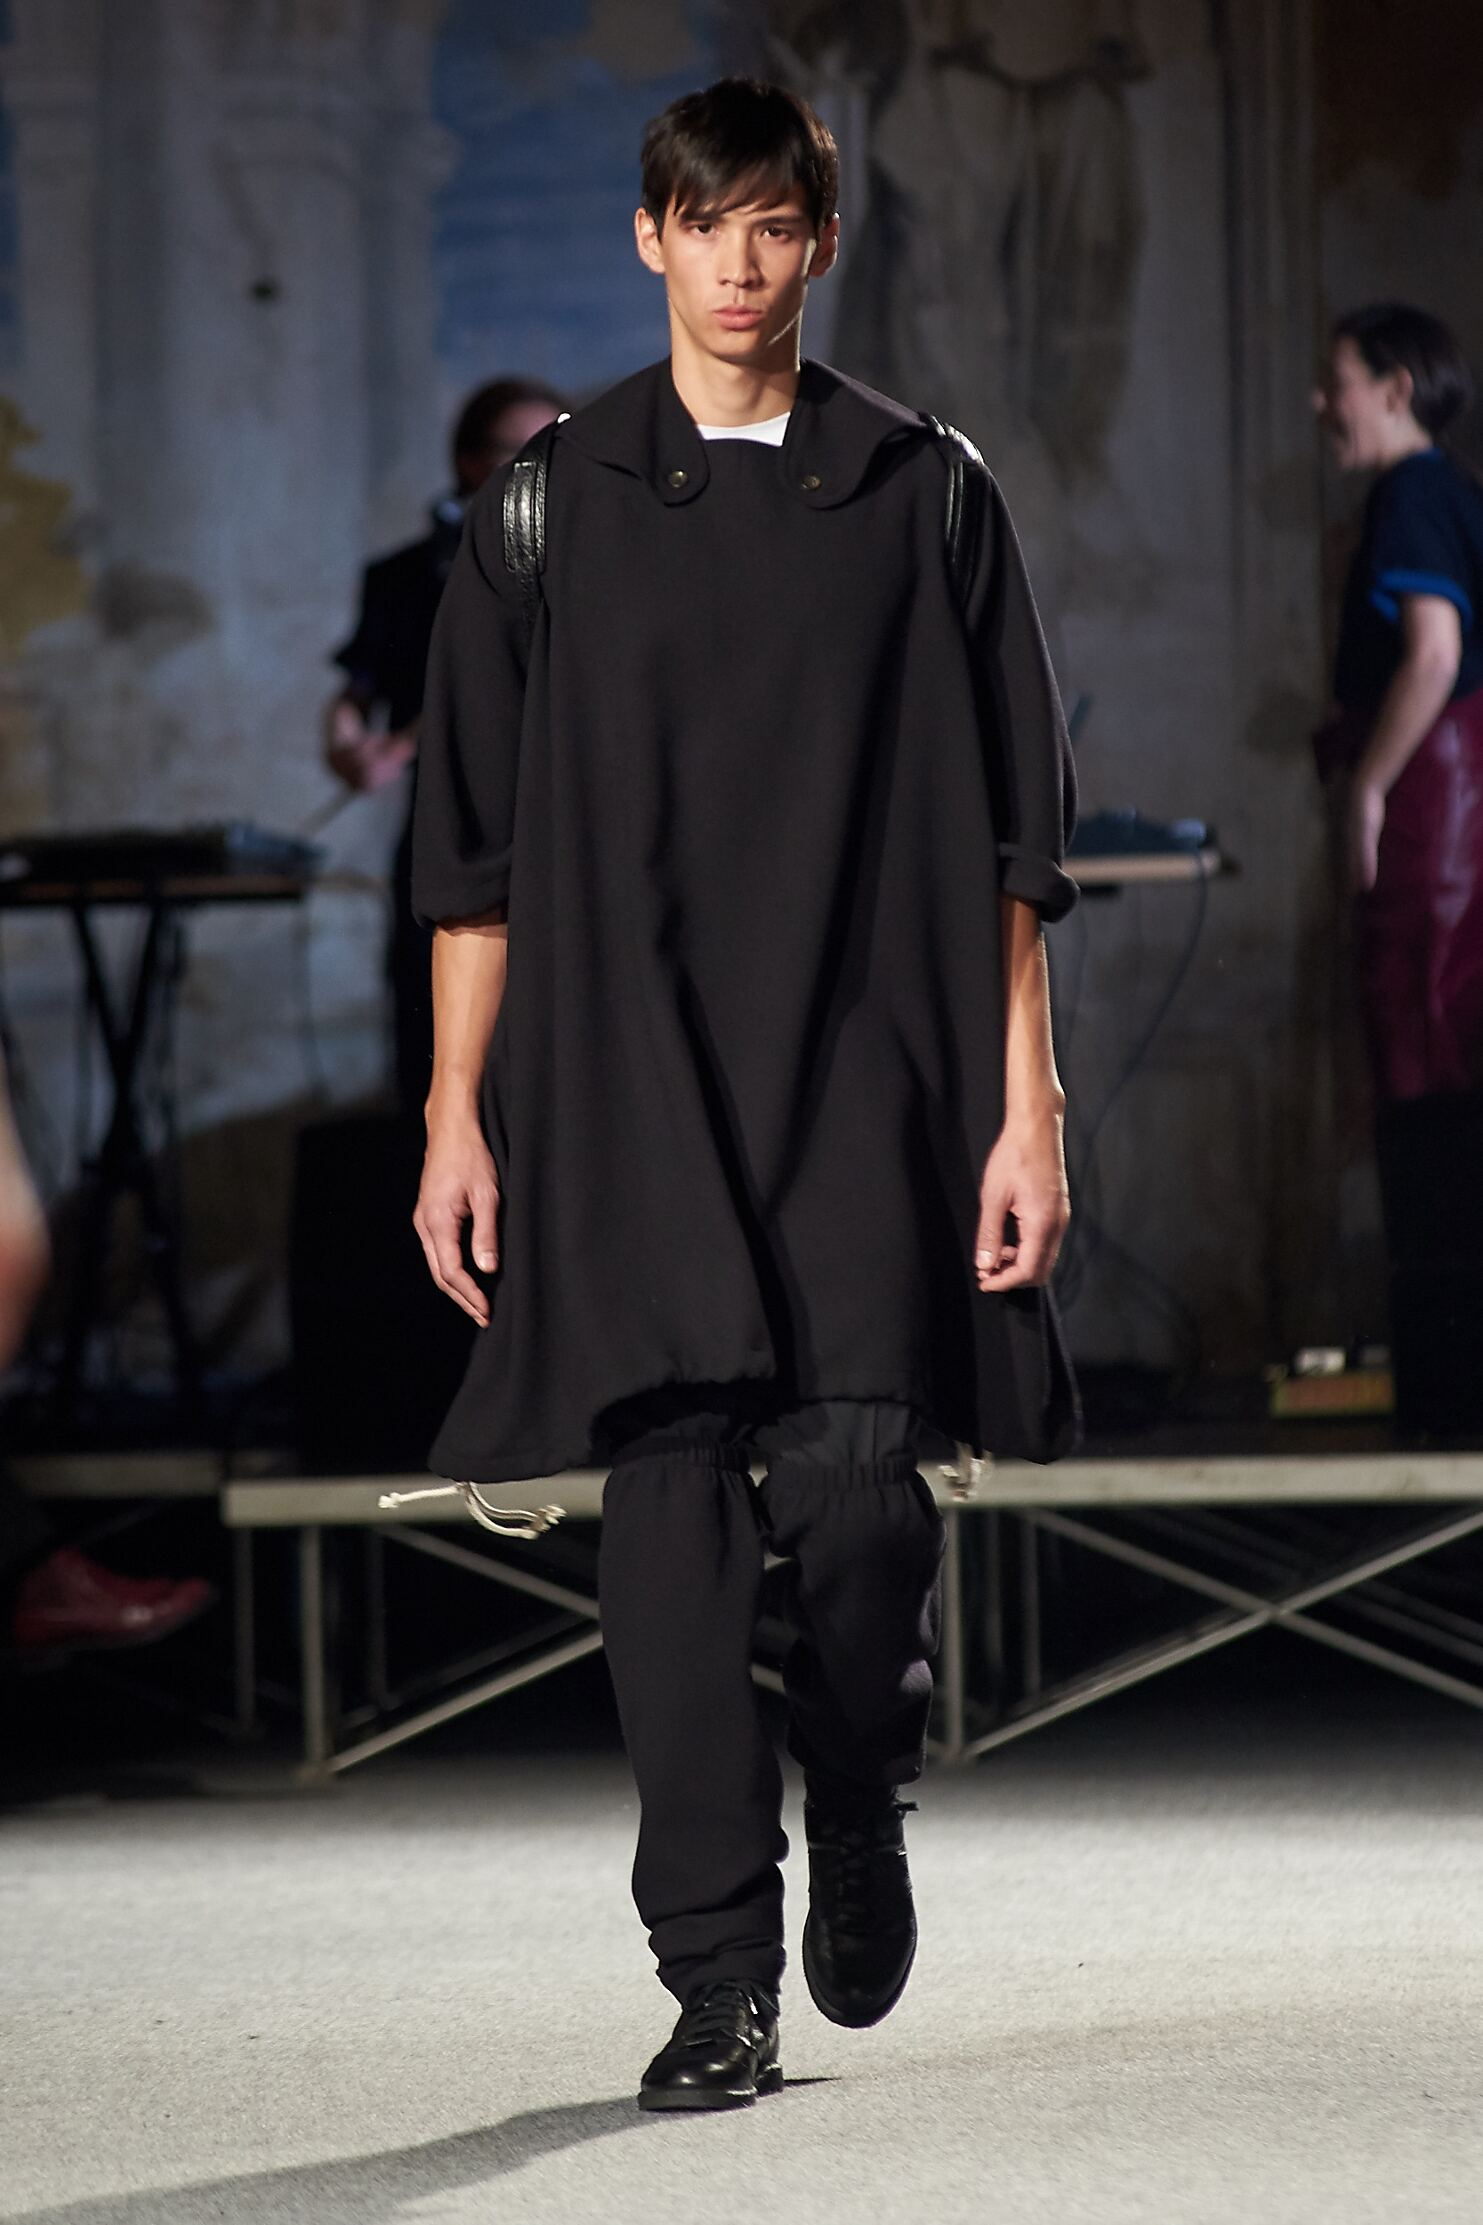 2015 Catwalk Andrea Incontri Man Fashion Show Winter